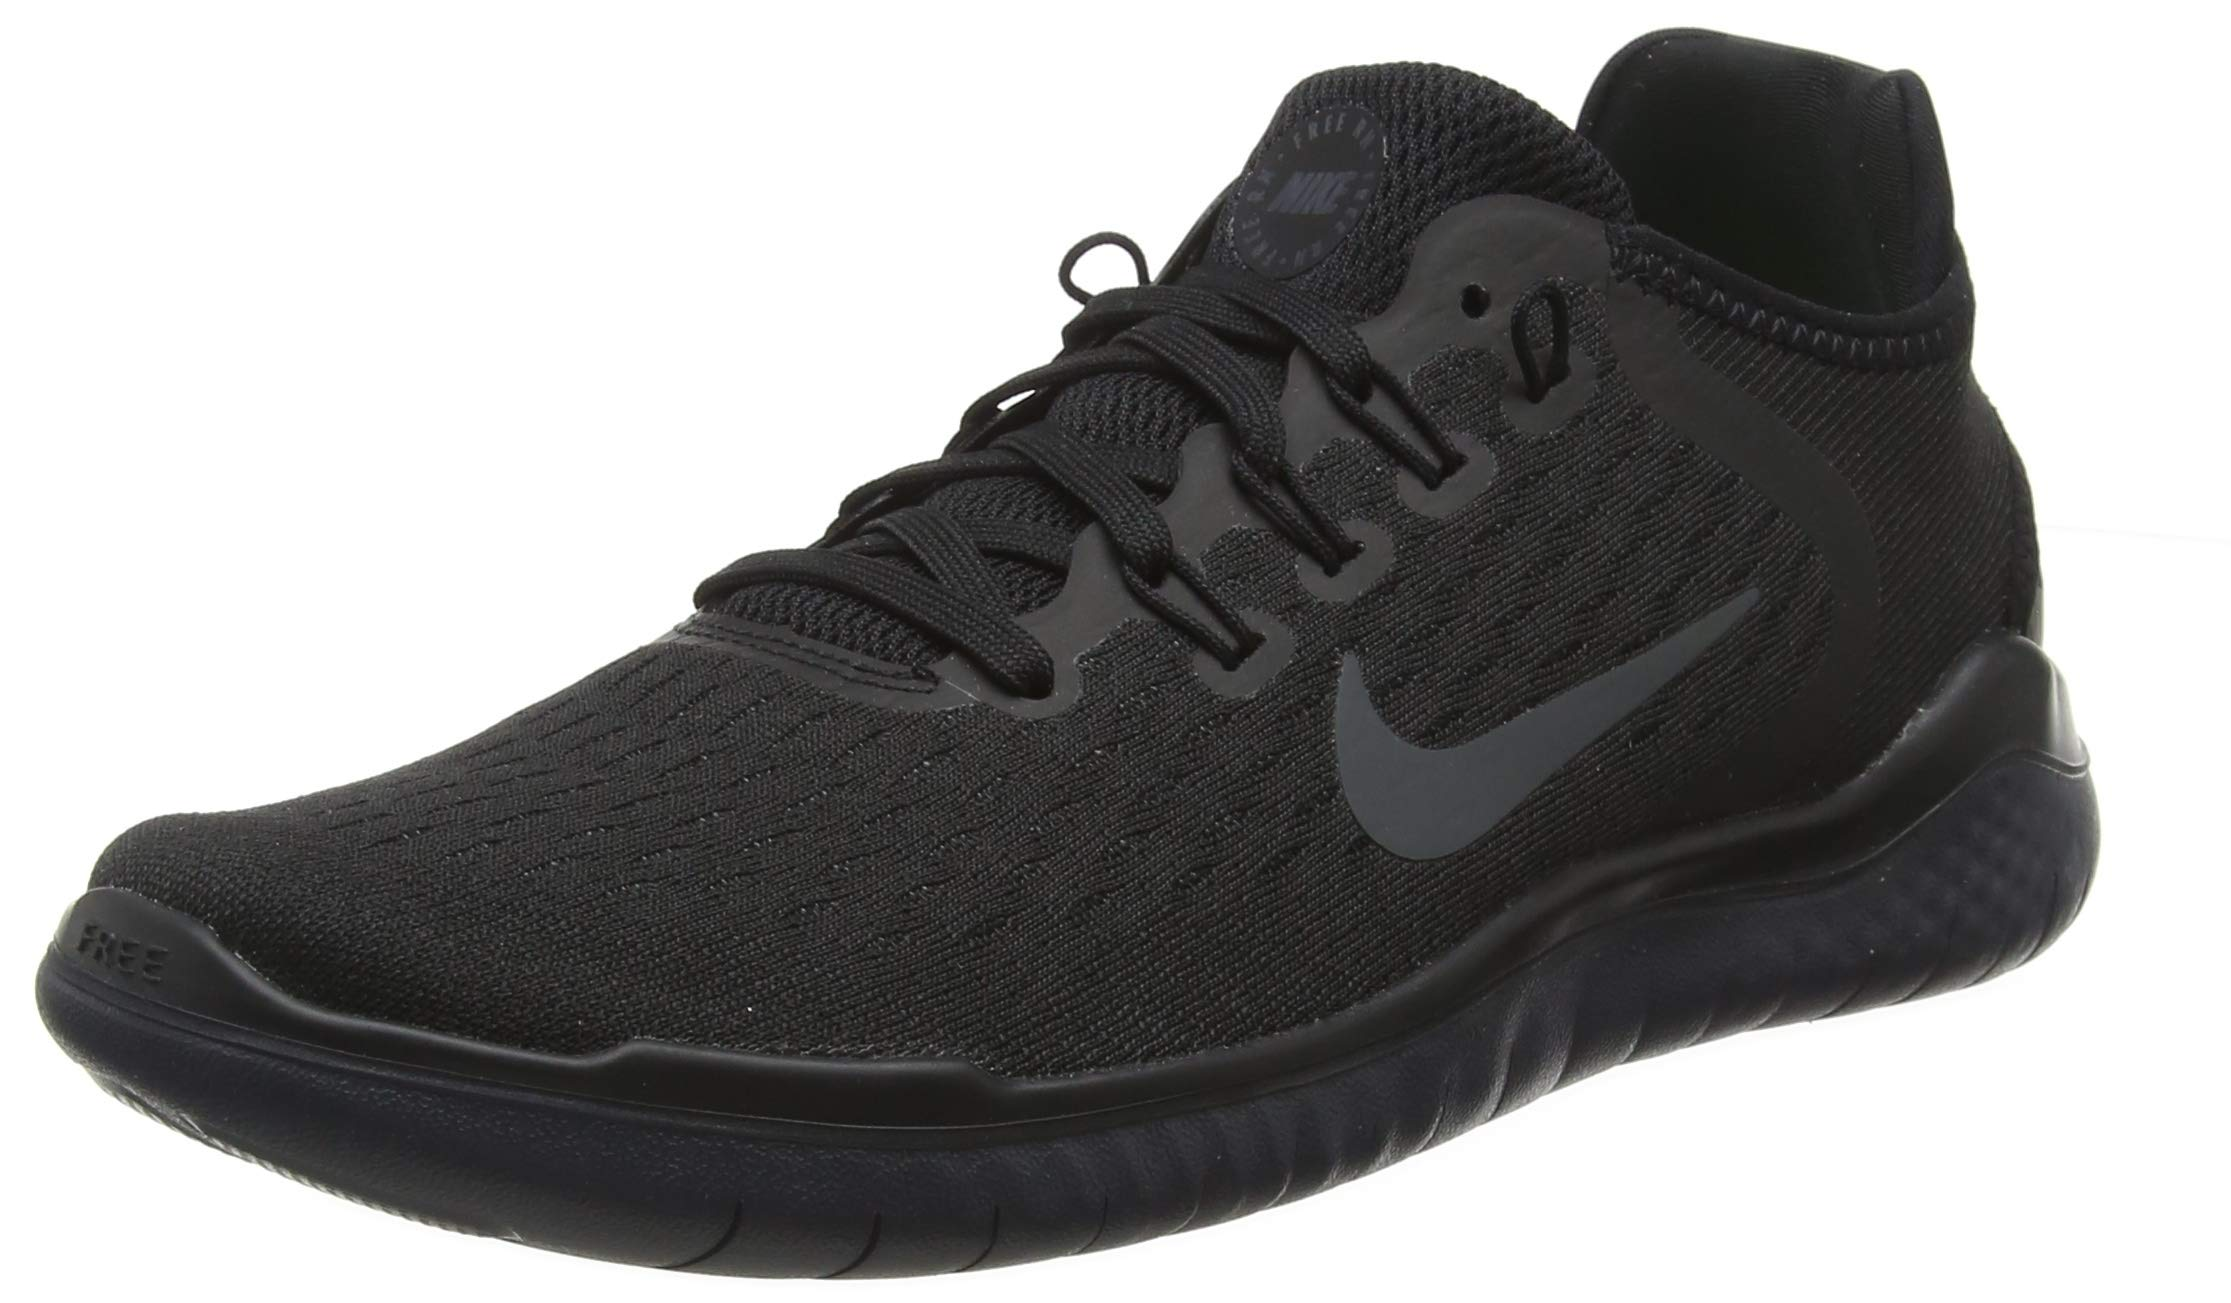 Nike Mens Free RN 2018 Running Shoes (11) Black/Anthracite by Nike